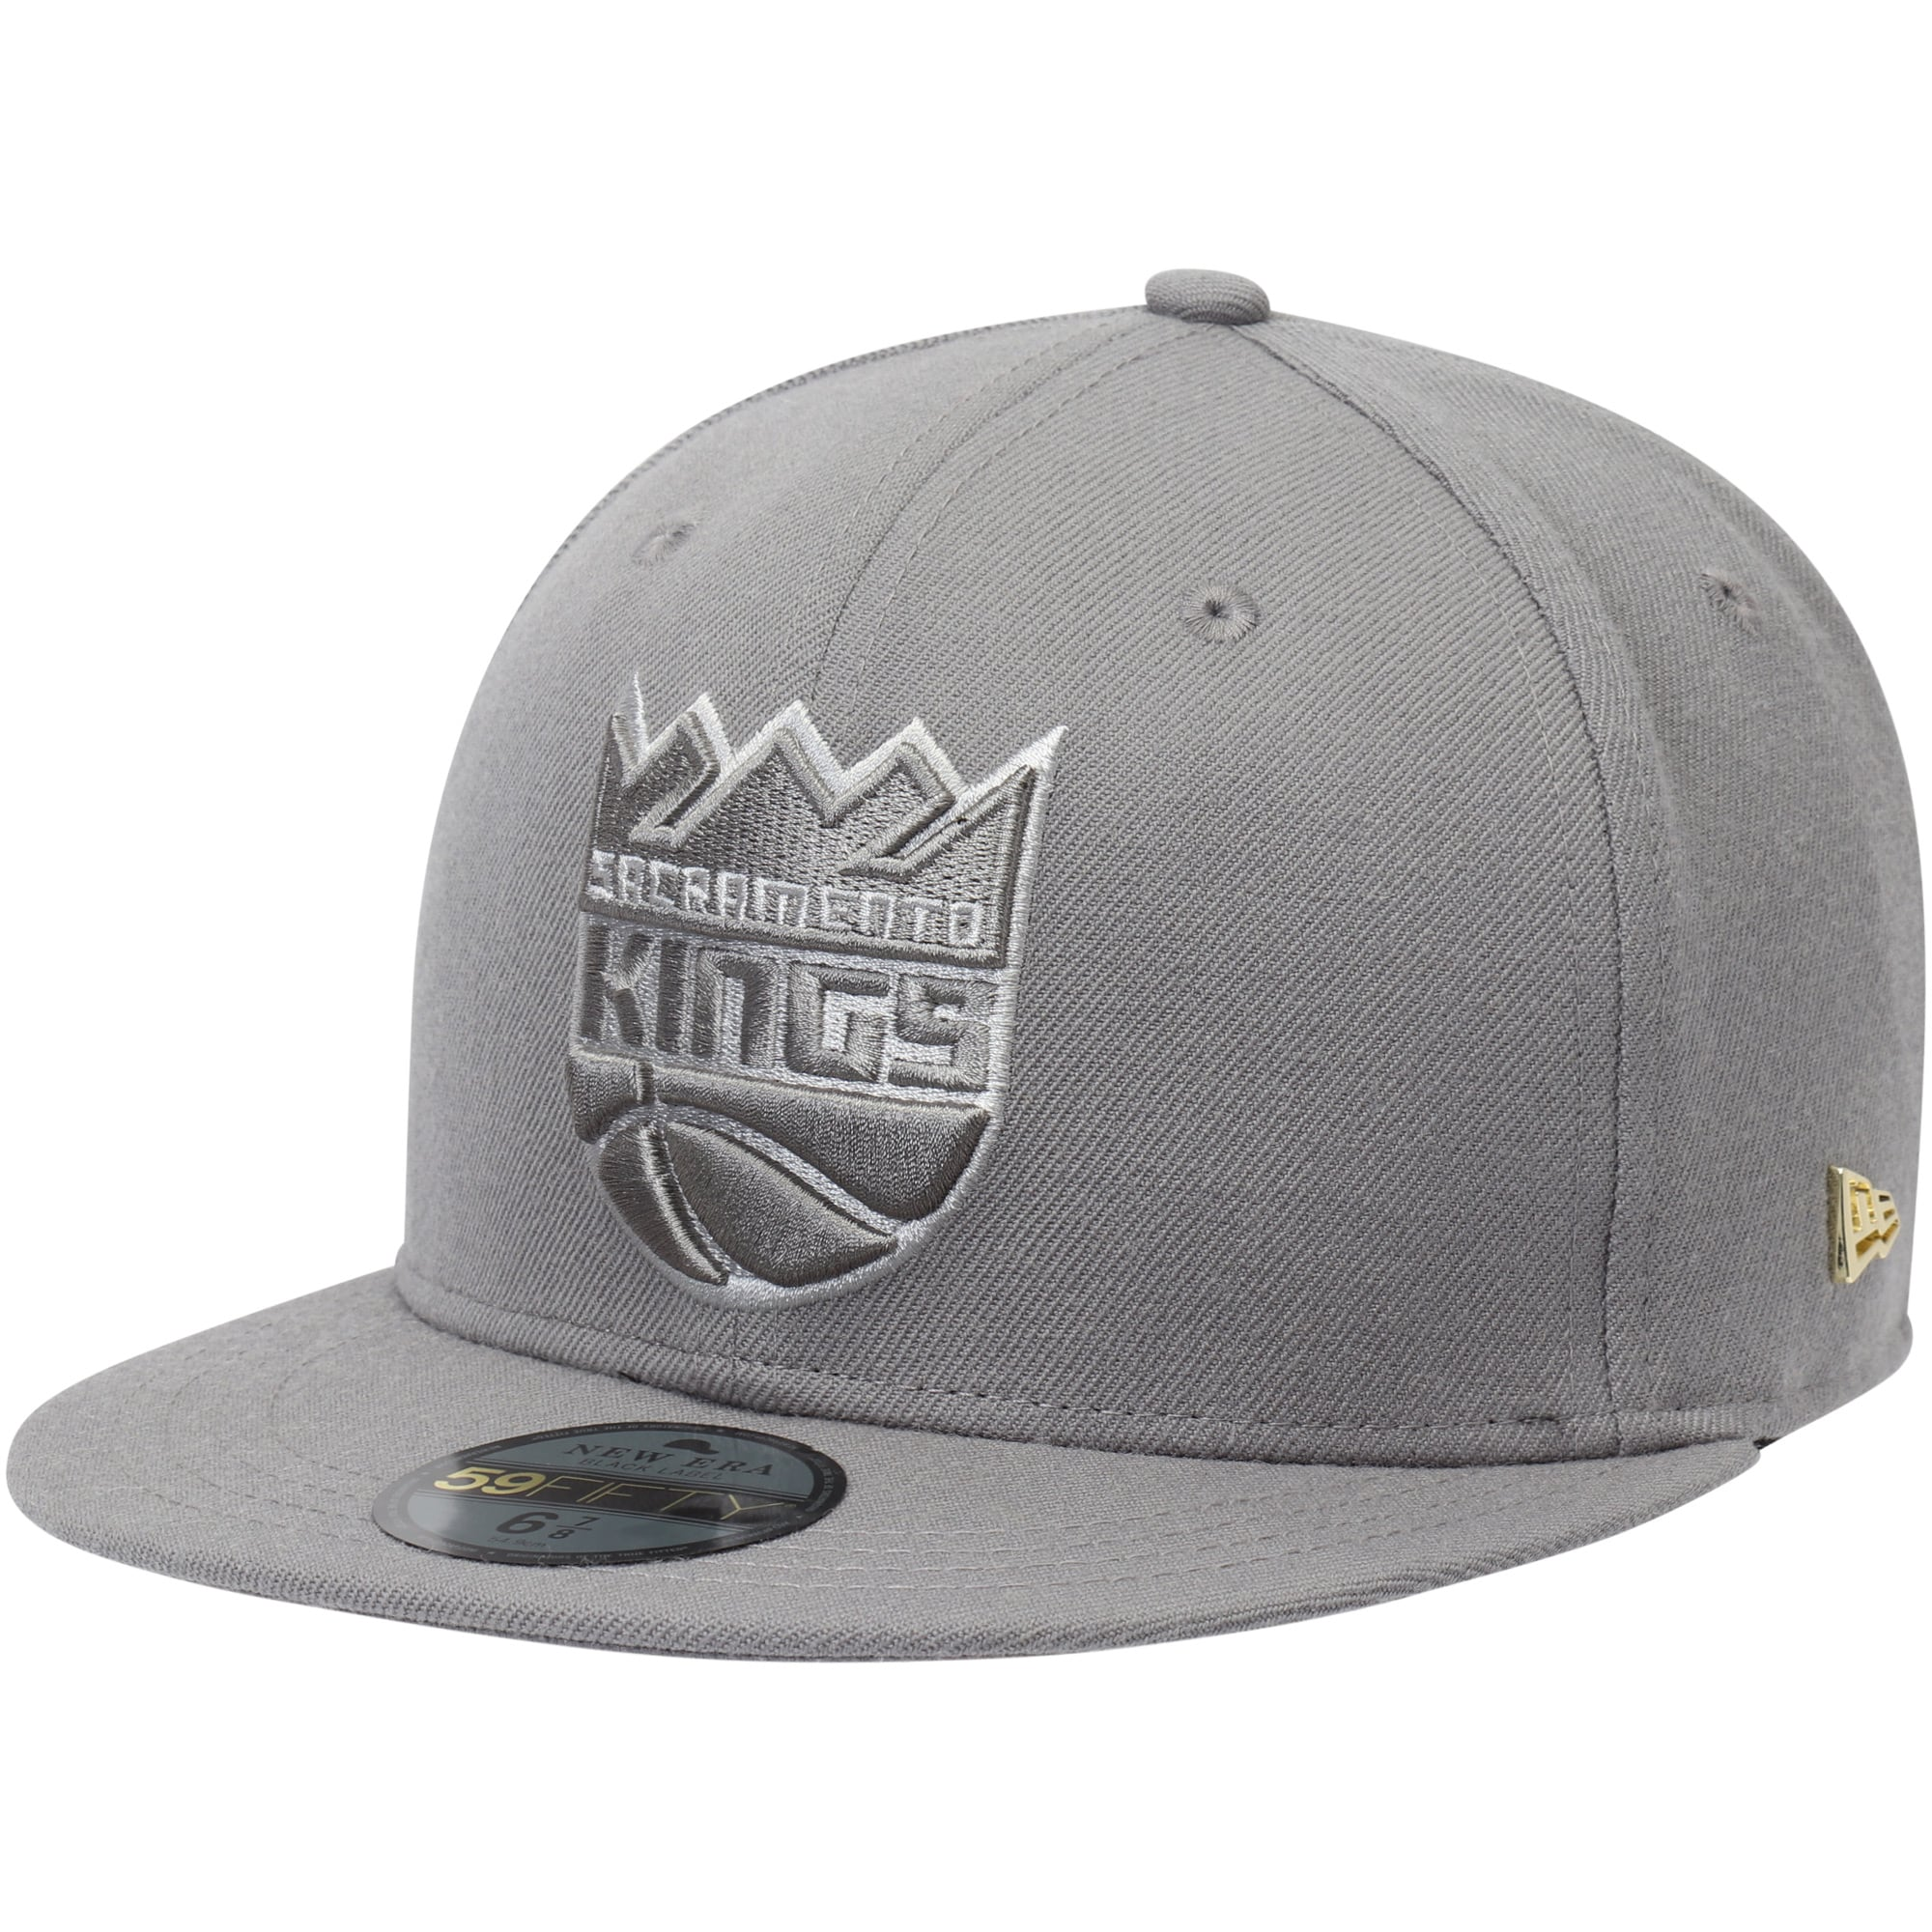 Sacramento Kings New Era Essential Black Label Series 59FIFTY Fitted Hat - Gray